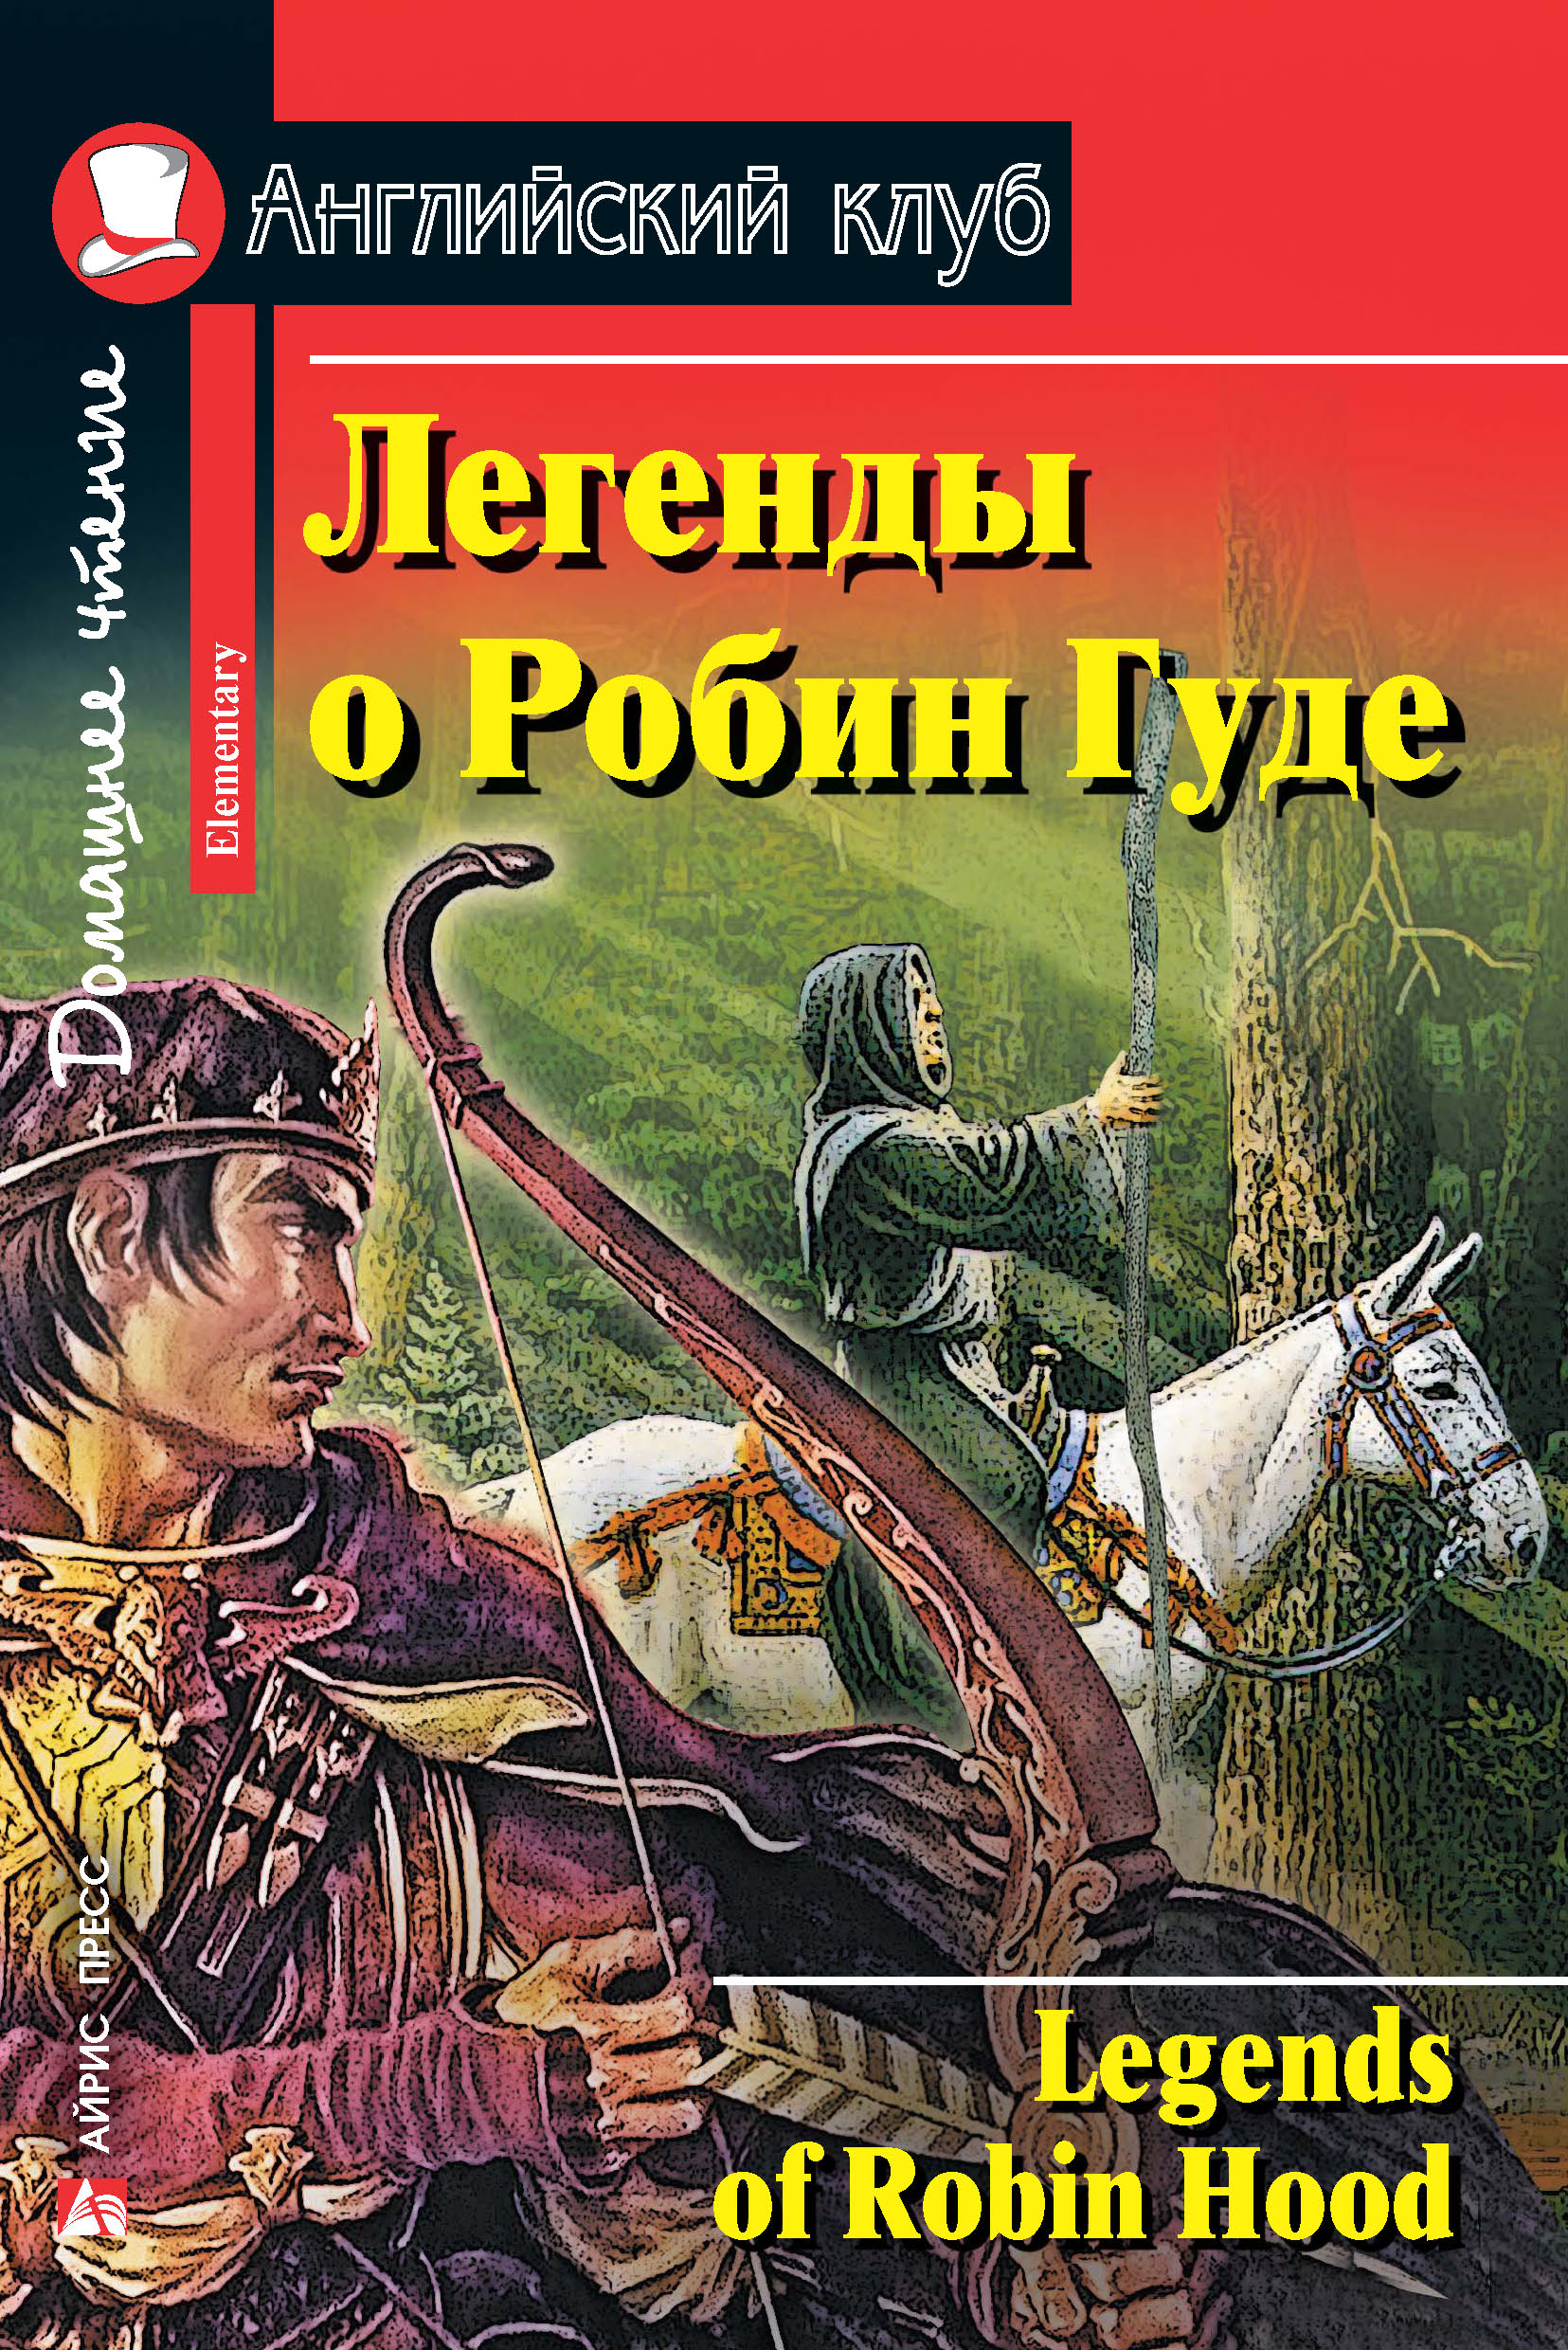 Отсутствует Легенды о Робин Гуде / Legends of Robin Hood rdr cd [young] robin hood